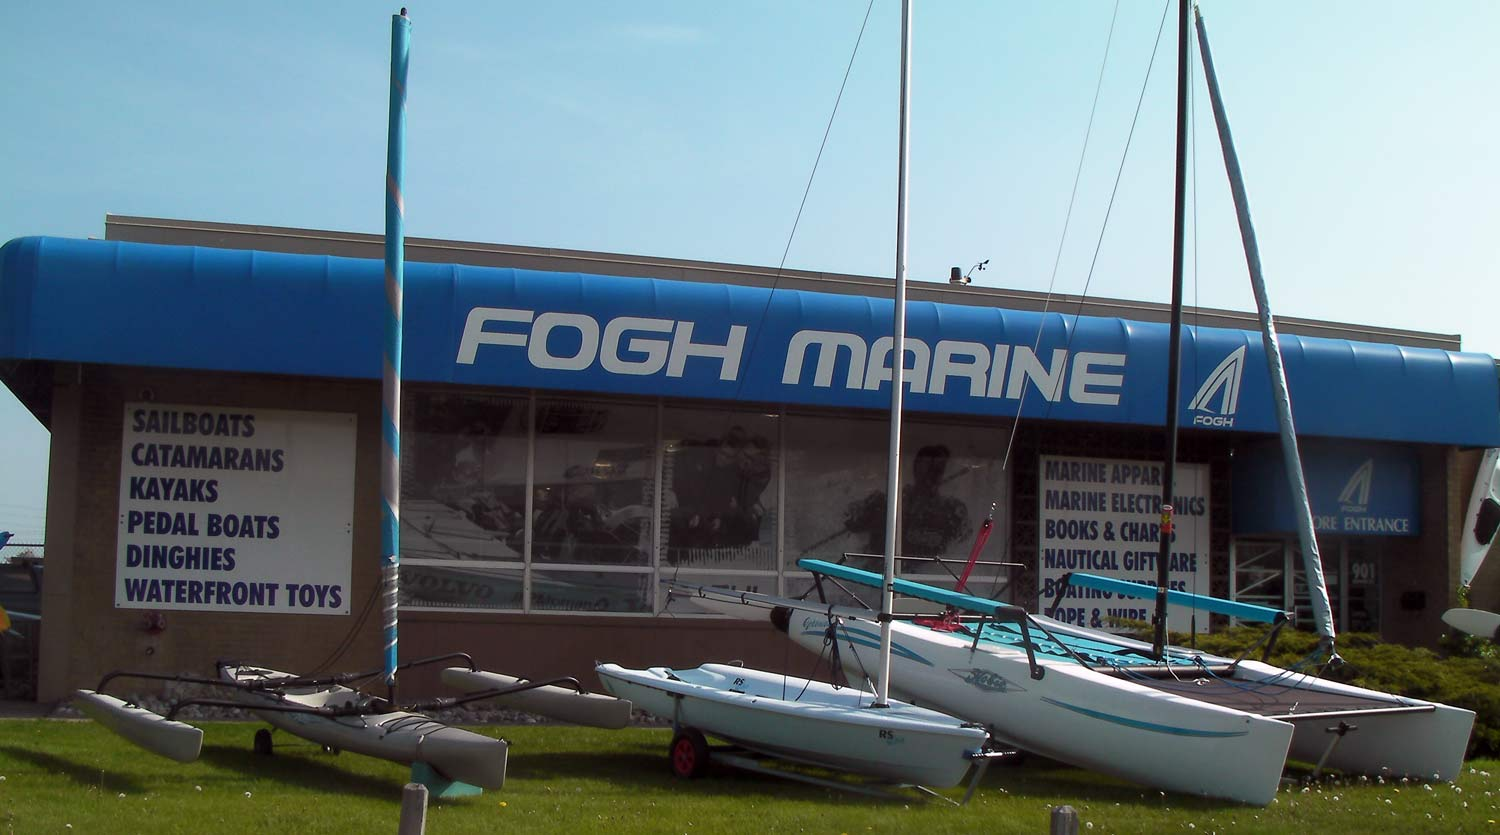 Fogh Marine to sponsor 2017 Melges 24 Canadian Nationals!